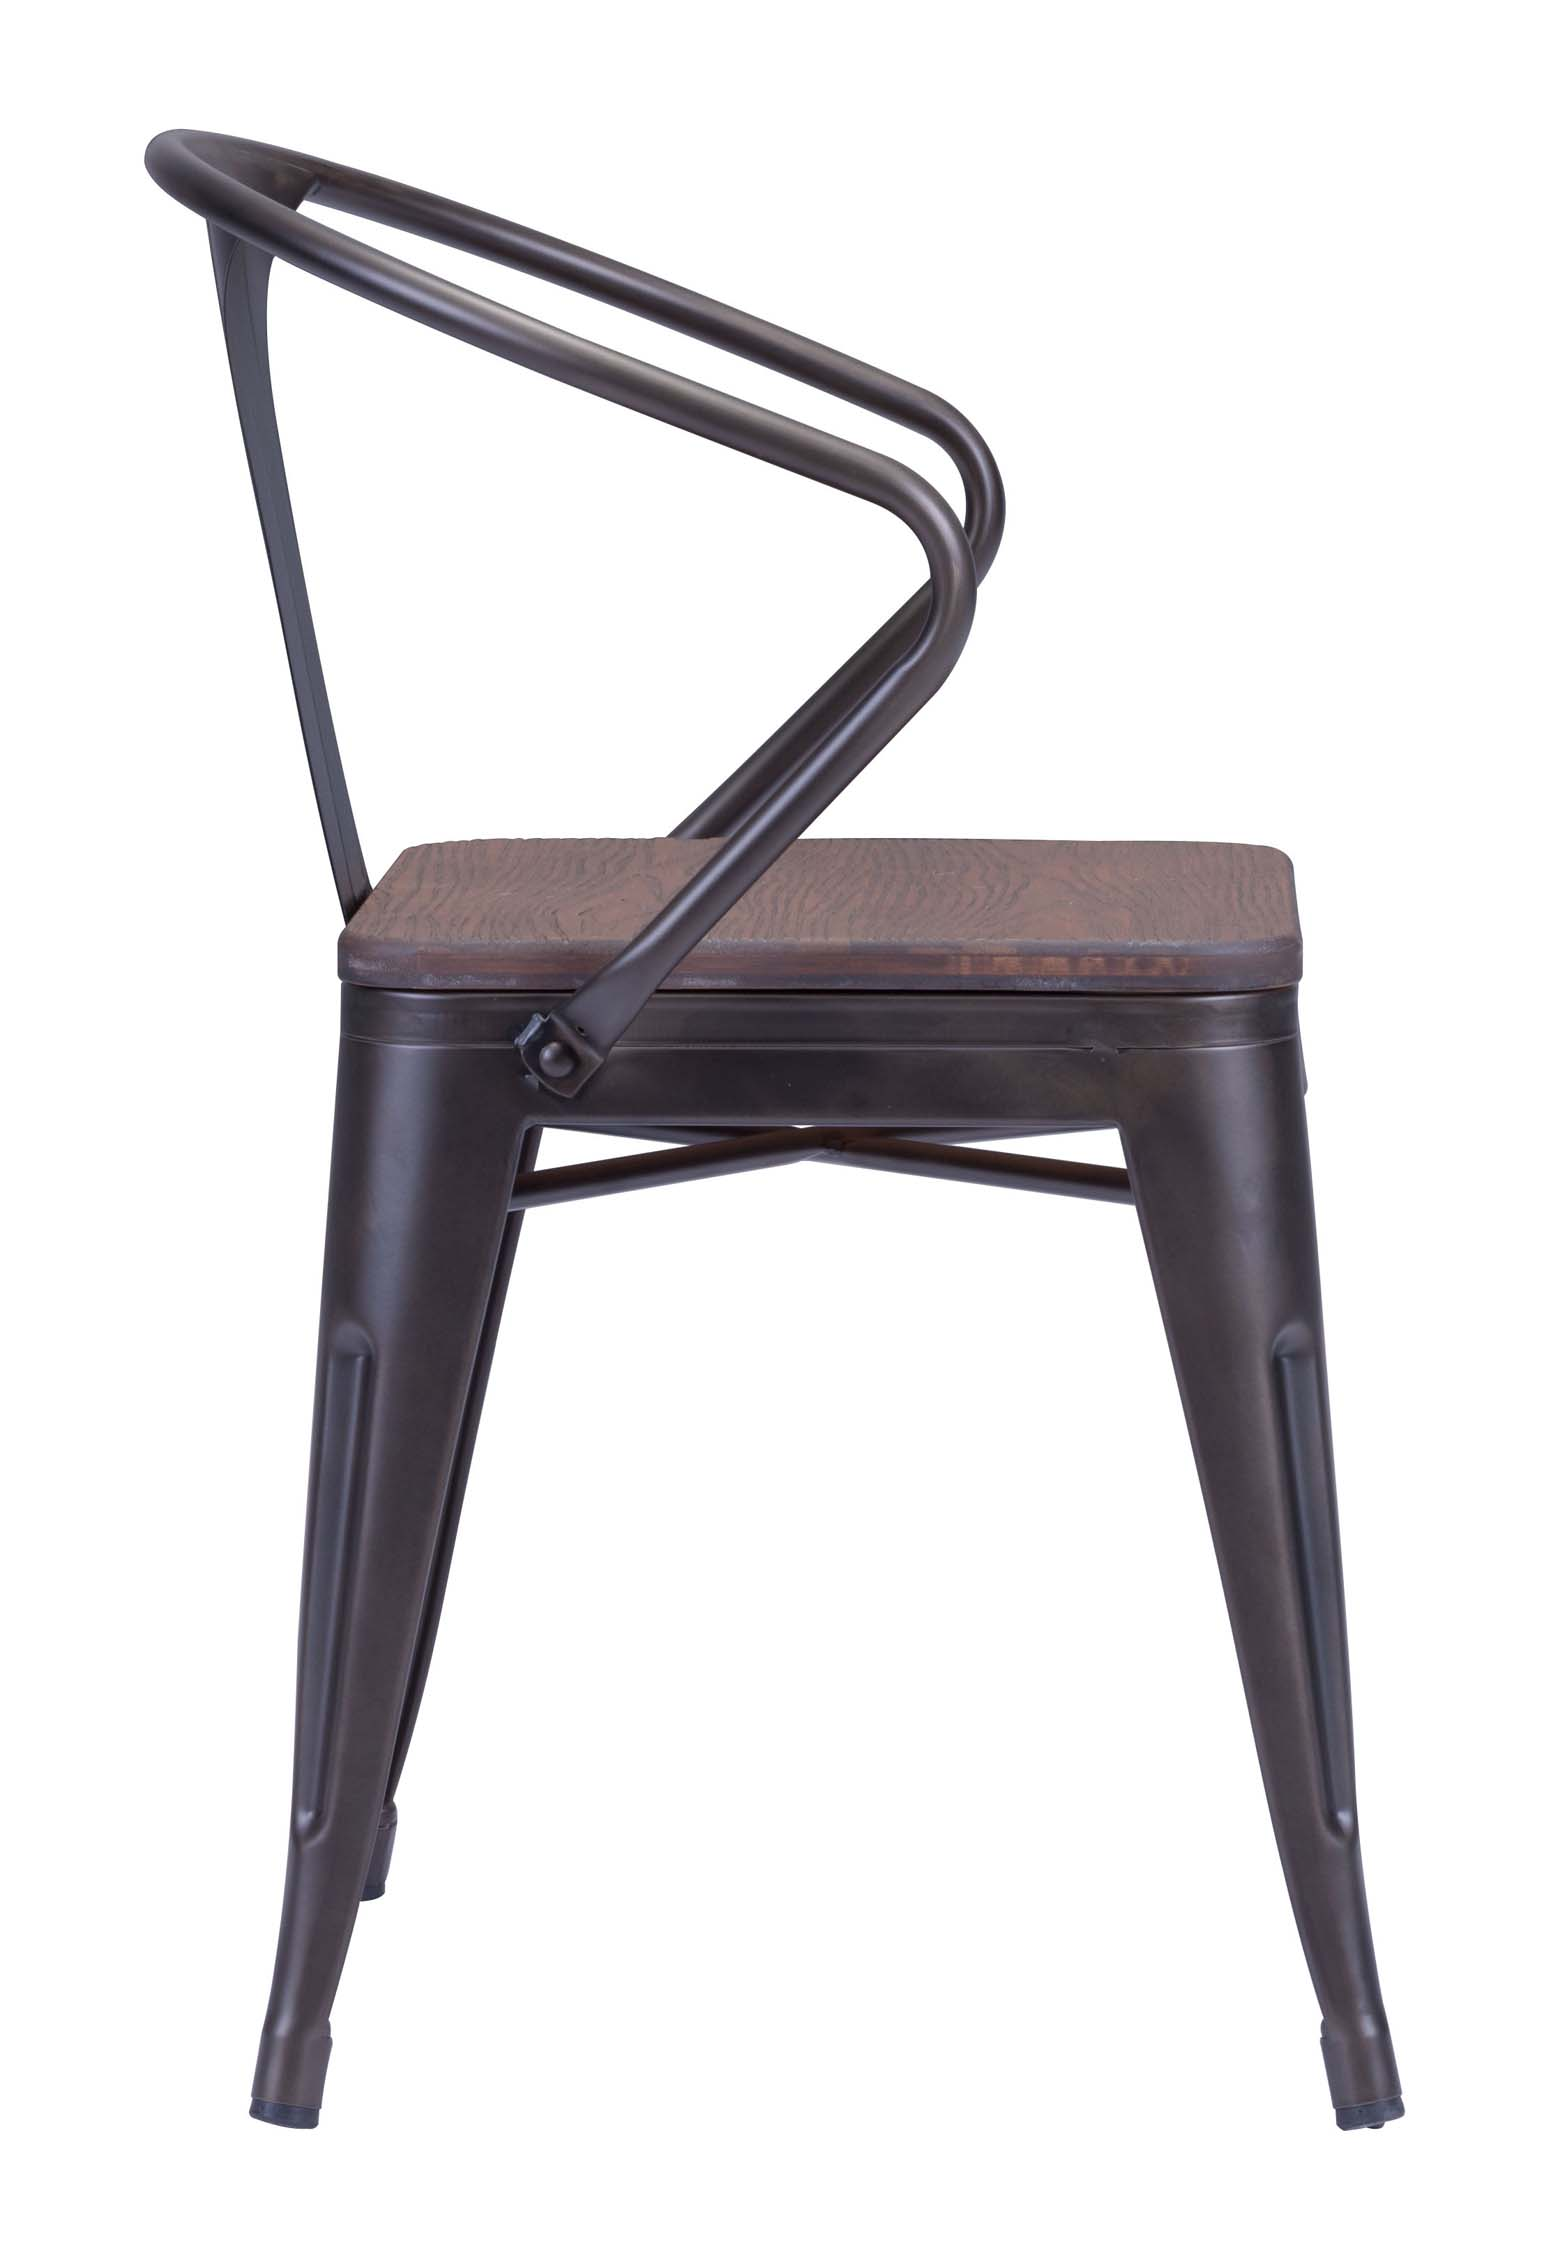 ... Zuo Helix Dining Chair Rustic Wood ...